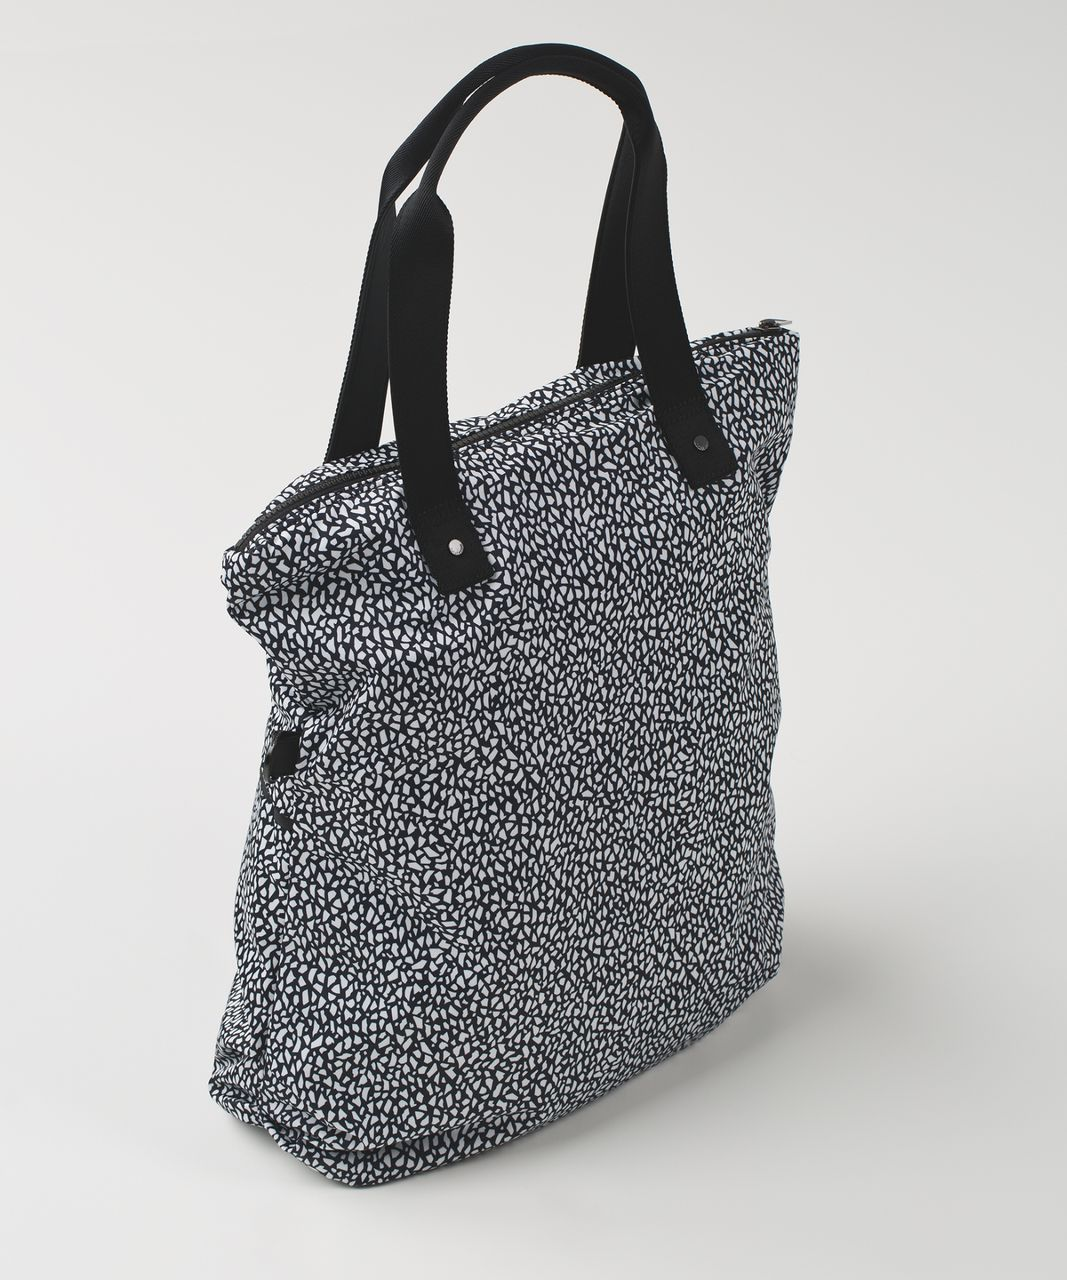 daf703fa98 Lululemon Twice As Nice Tote - Miss Mosaic Black - lulu fanatics